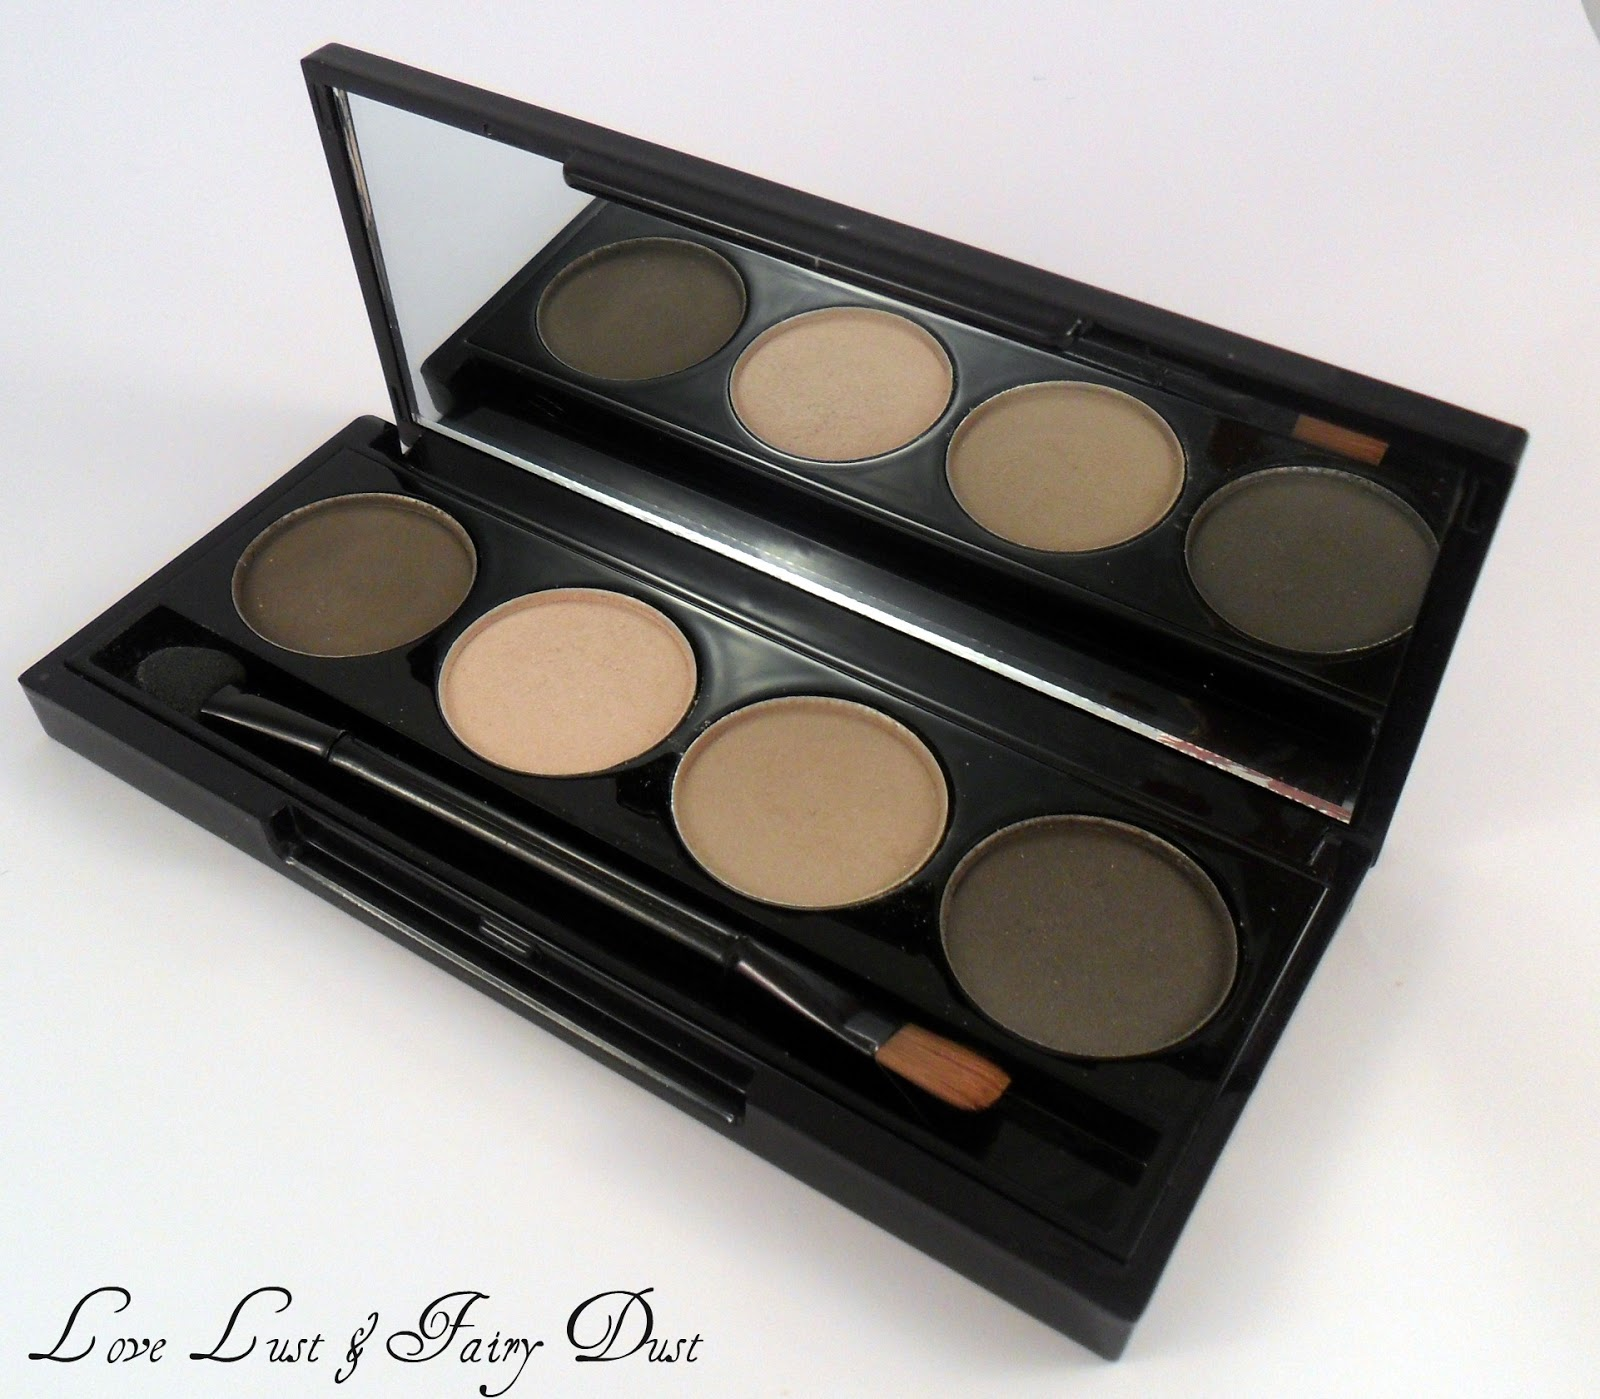 Colour Couture Cosmetics eye shadow quad